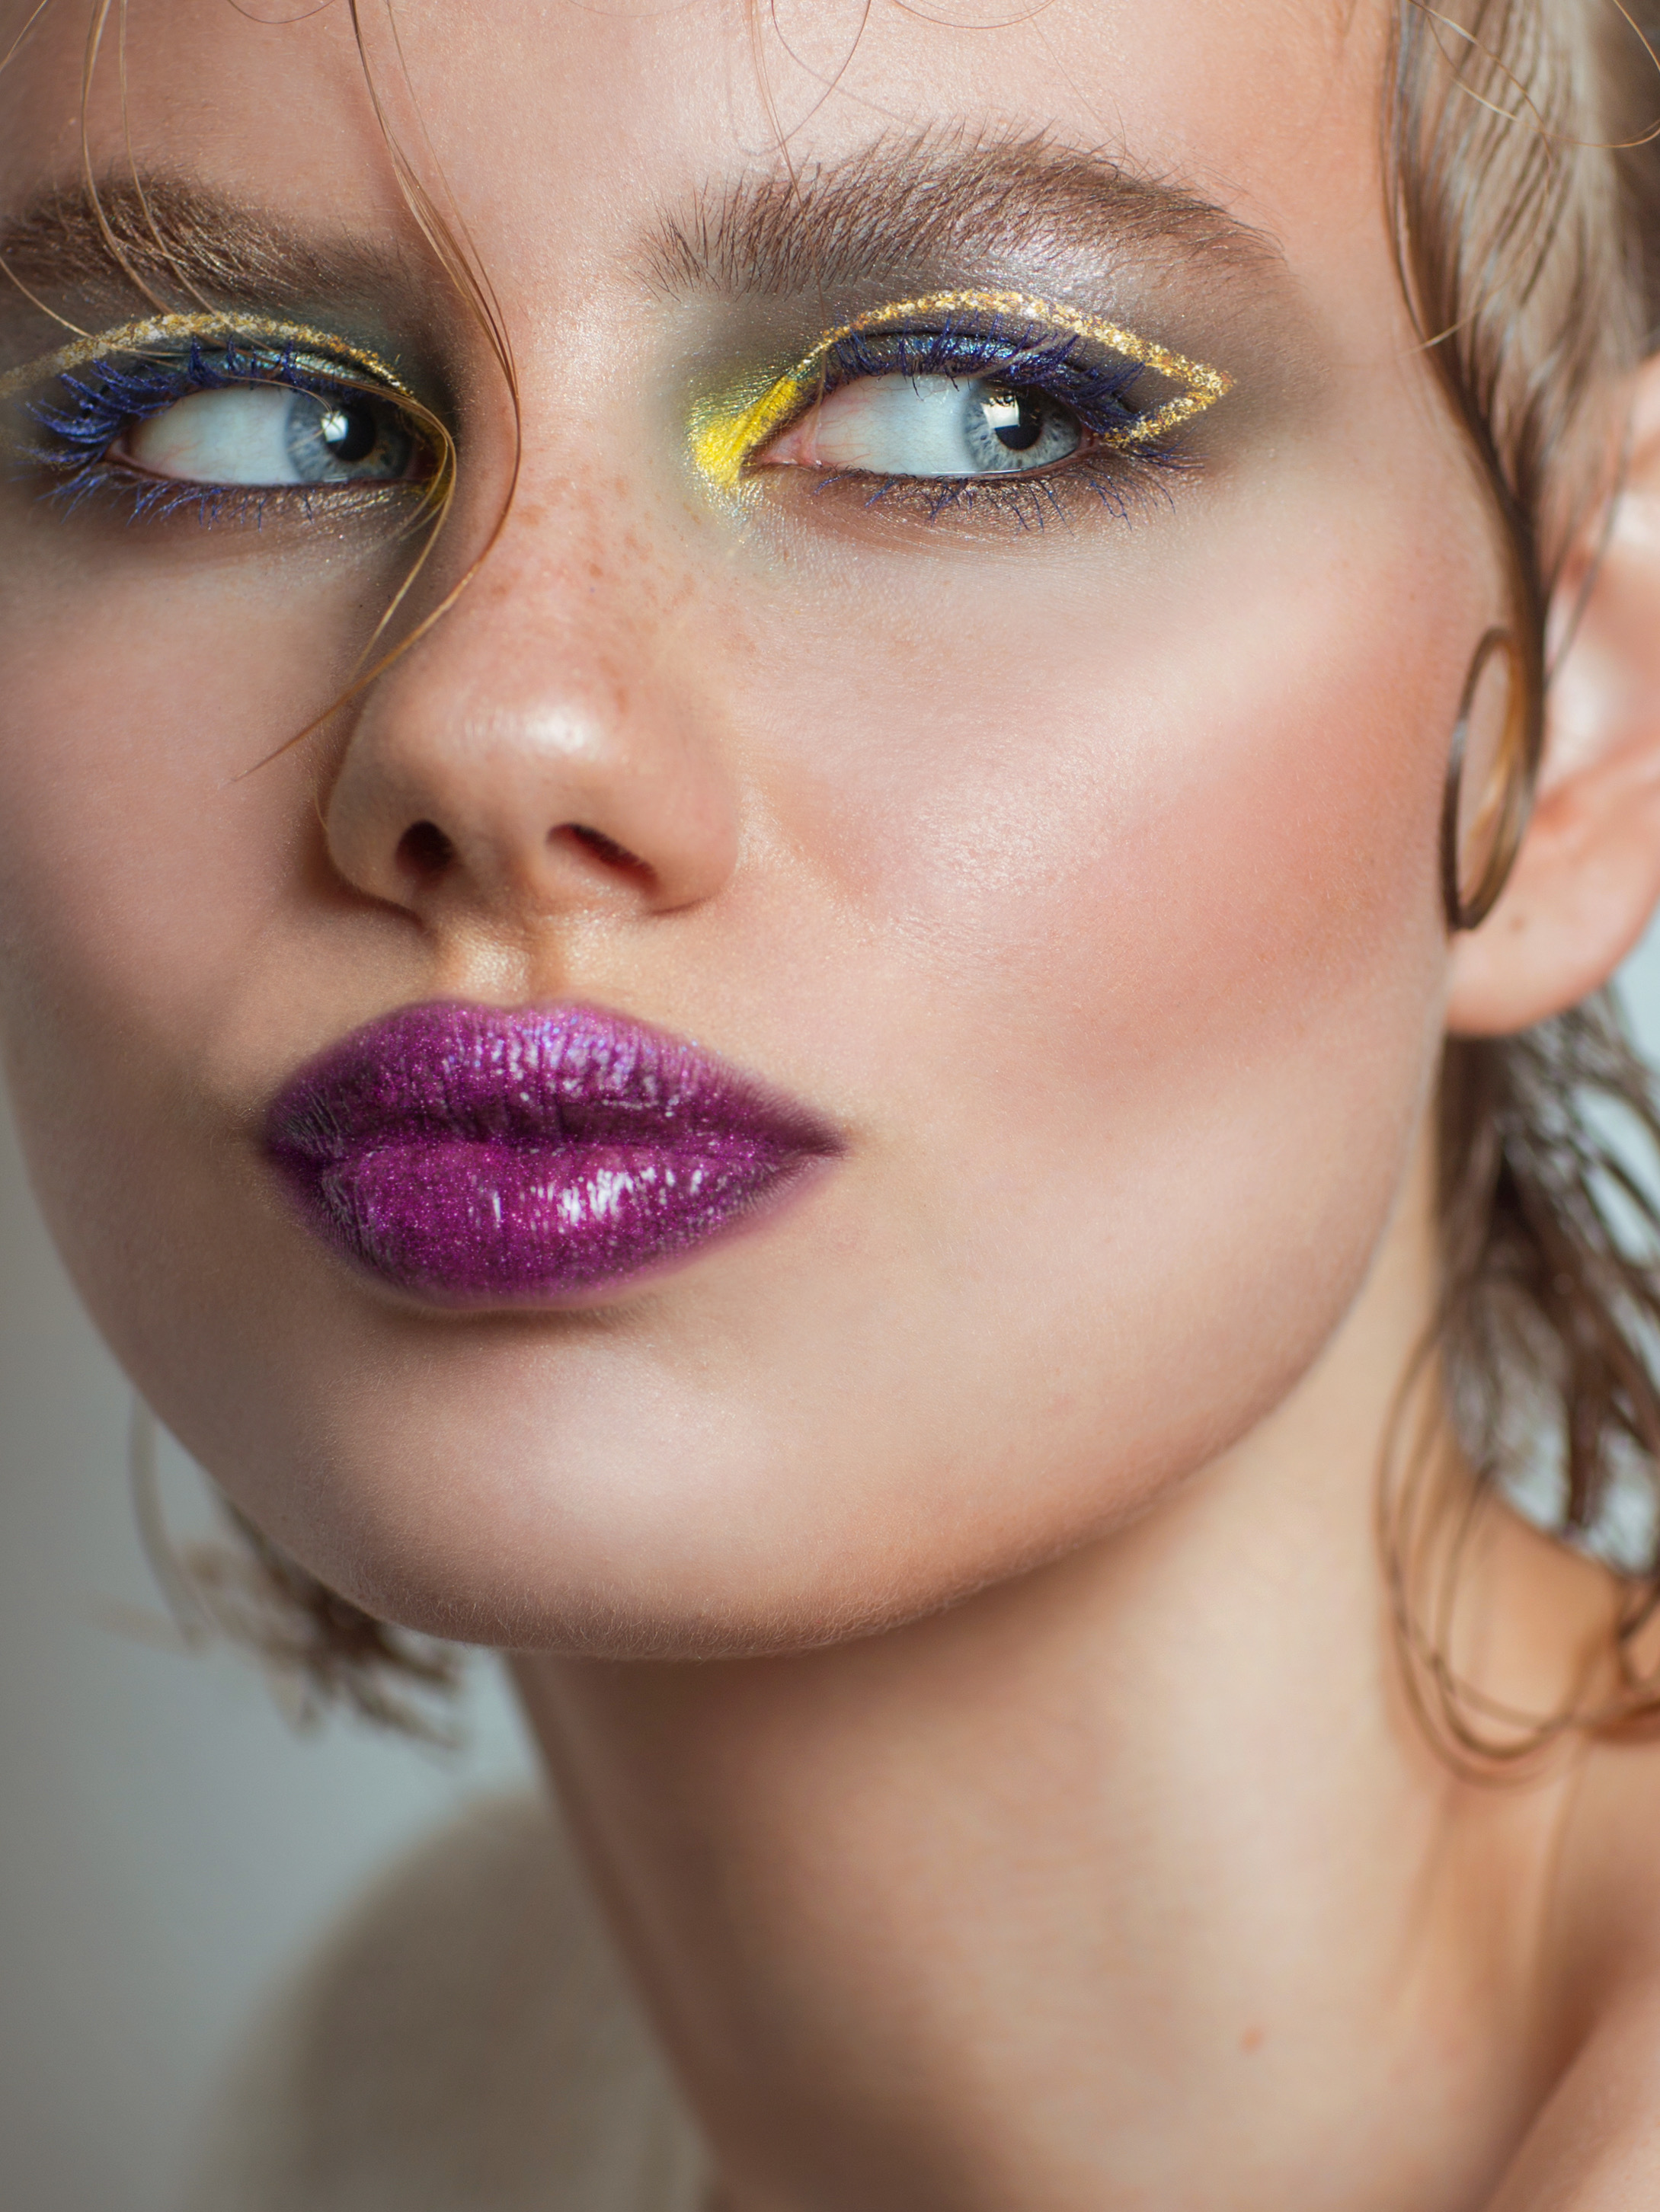 #glitter #krygina #kryginacosmetics #face #makeup #lips #sparkles #eyes #arrows #gold #magenta #picsart #пиксарт #крыгина #глиттер #лицо #макияж #губы #блё